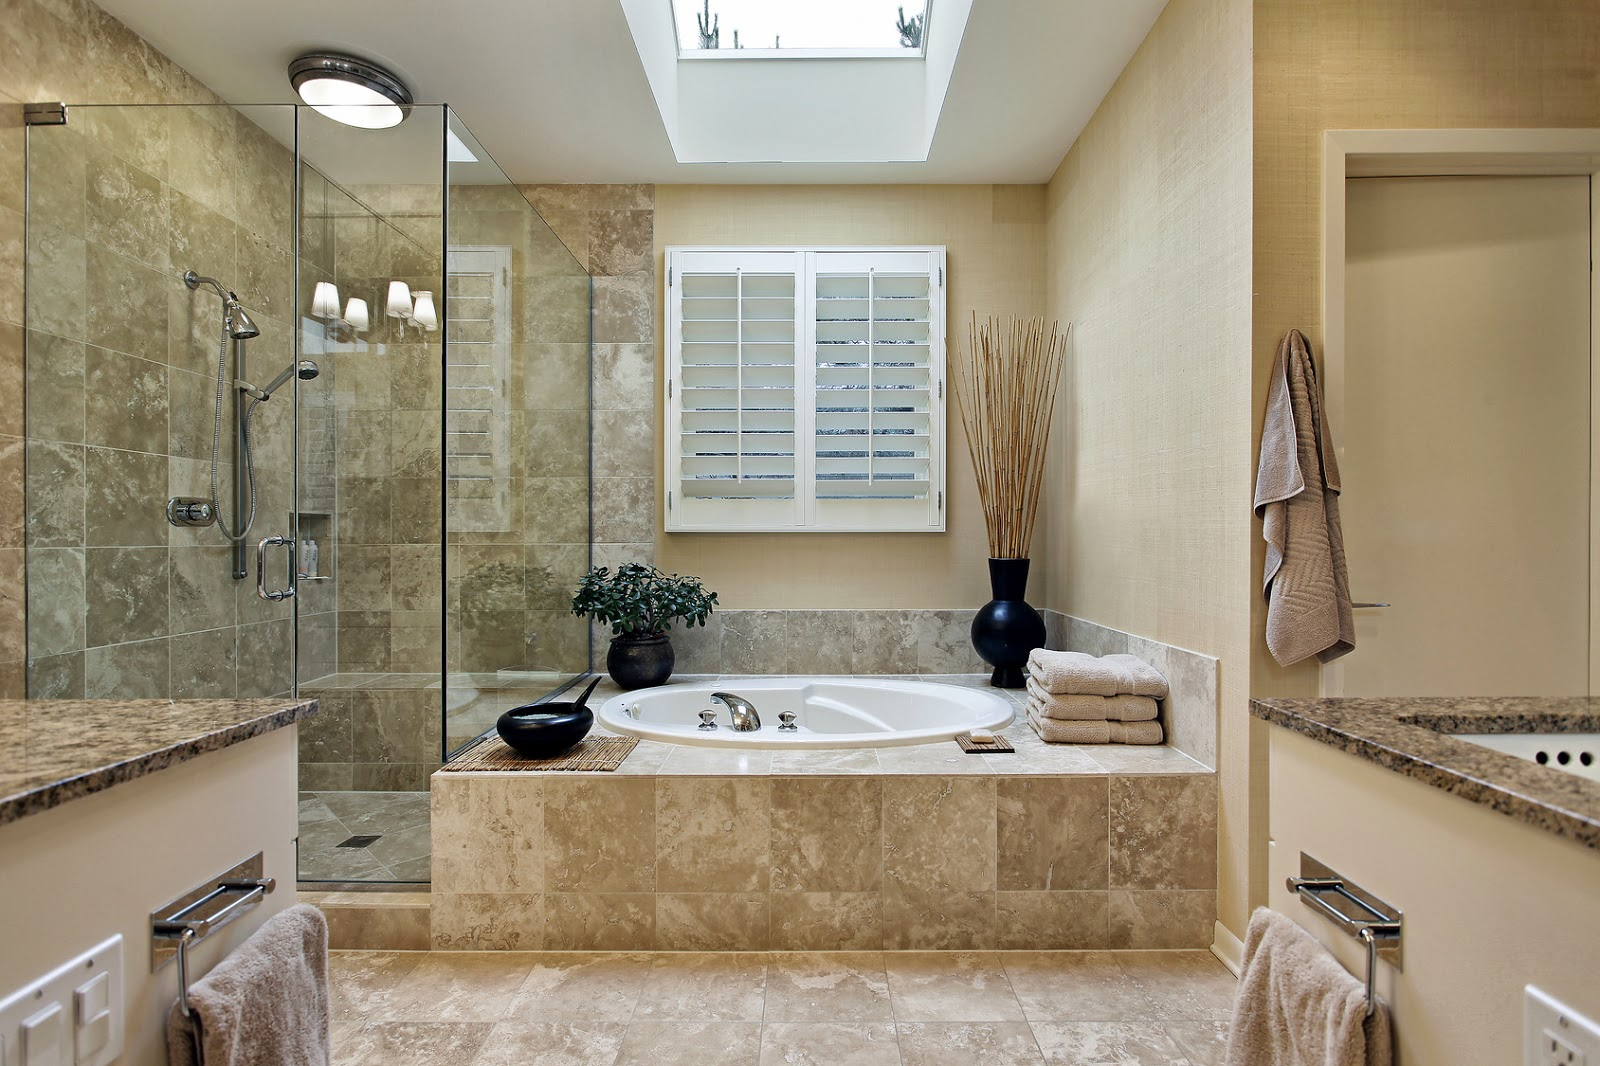 modern bathroom design with round white tub frameless glass door shower space modern bathroom appliances  brown marble tiles for shower wall and bathroom floors a pile of white towels black decorative vases